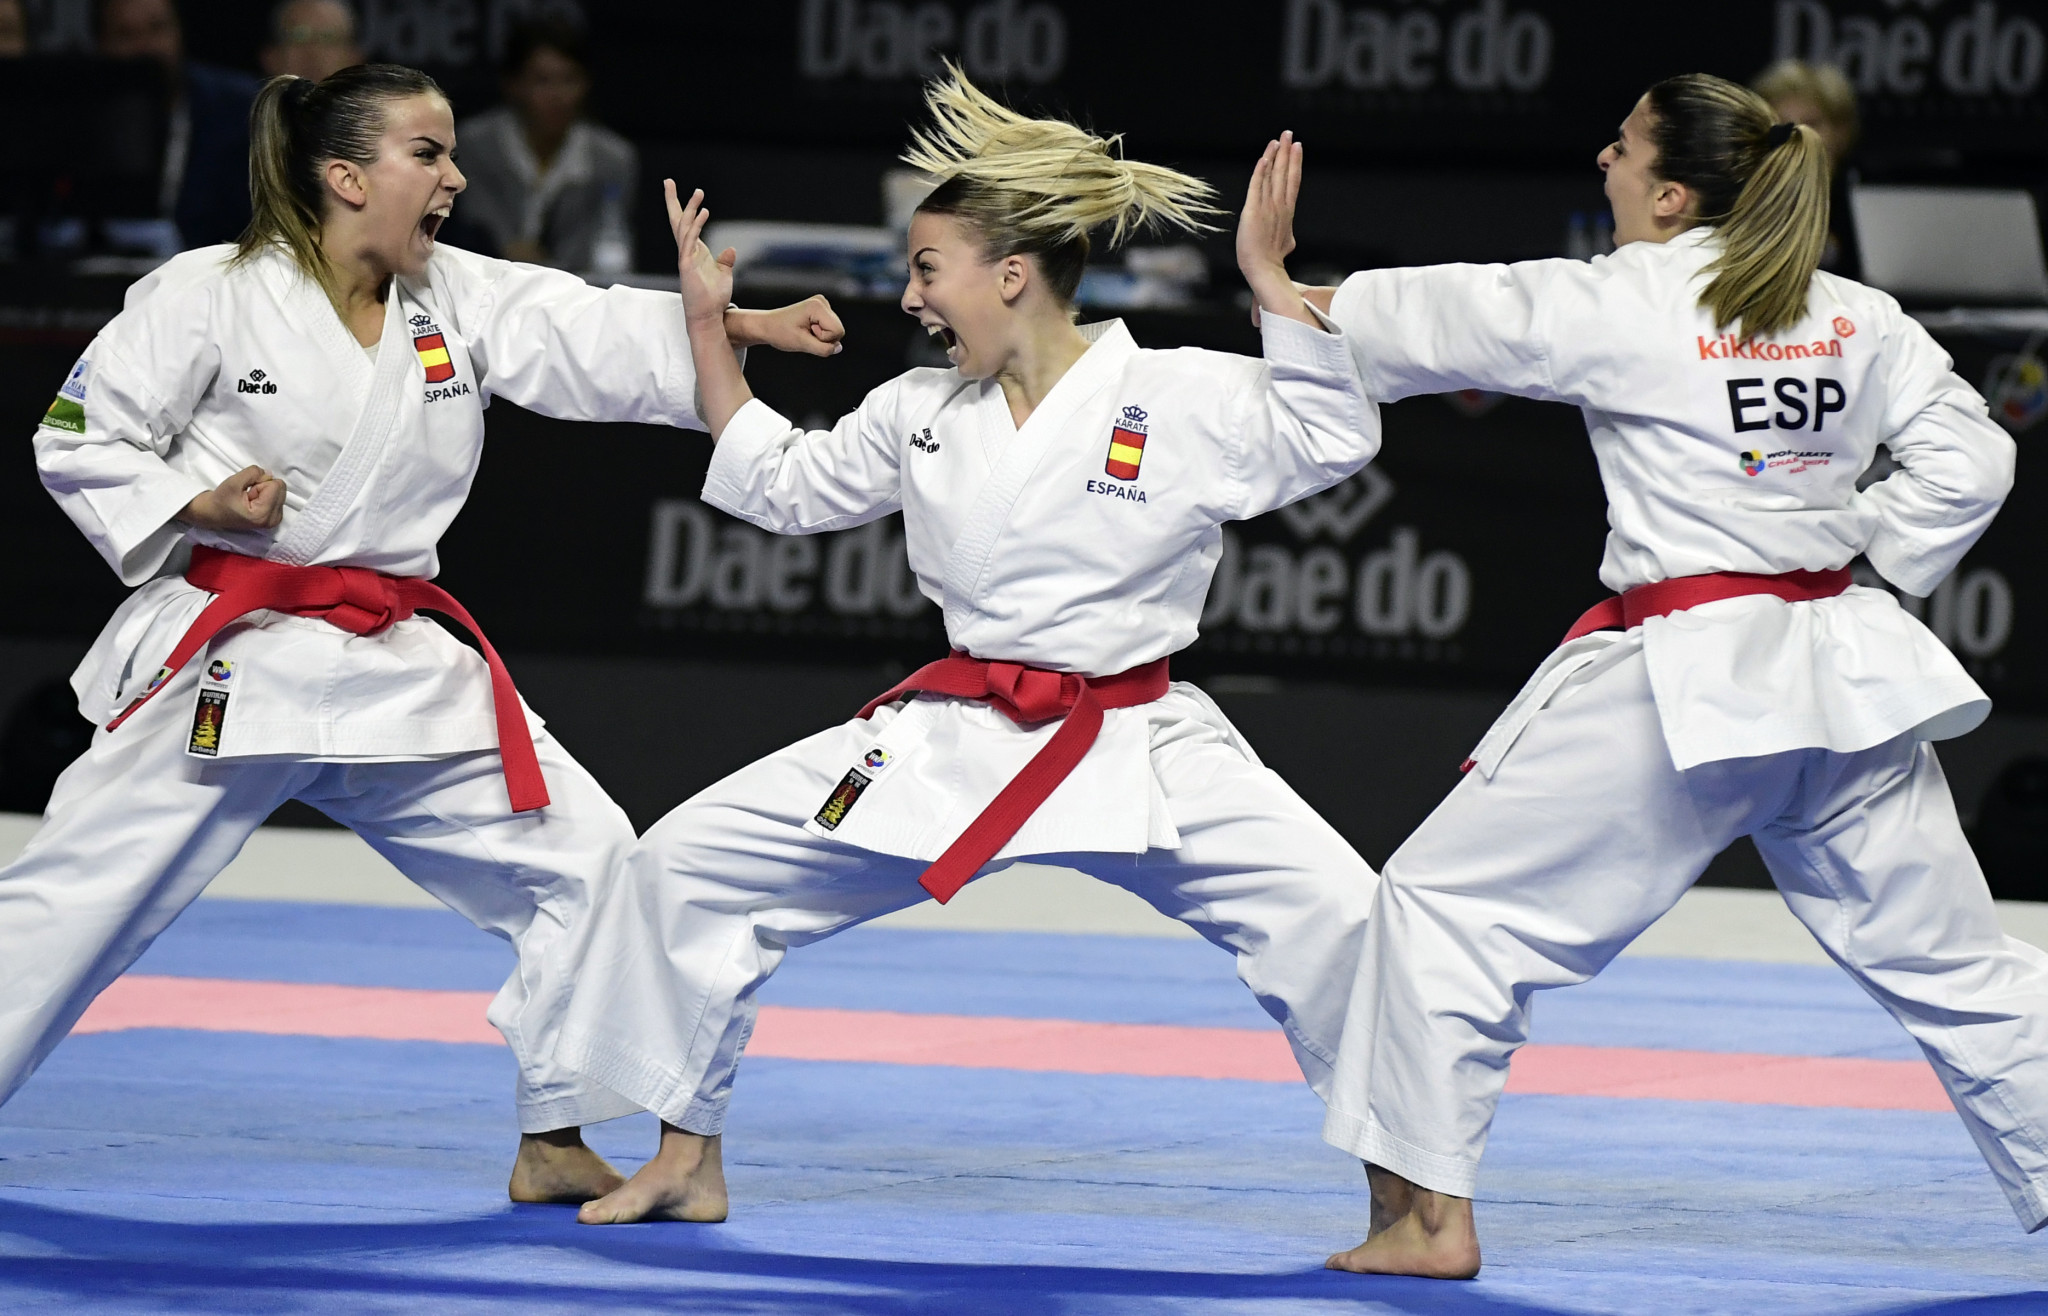 Numerous karate event have been postponed because of the COVID-19 pandemic ©Getty Images